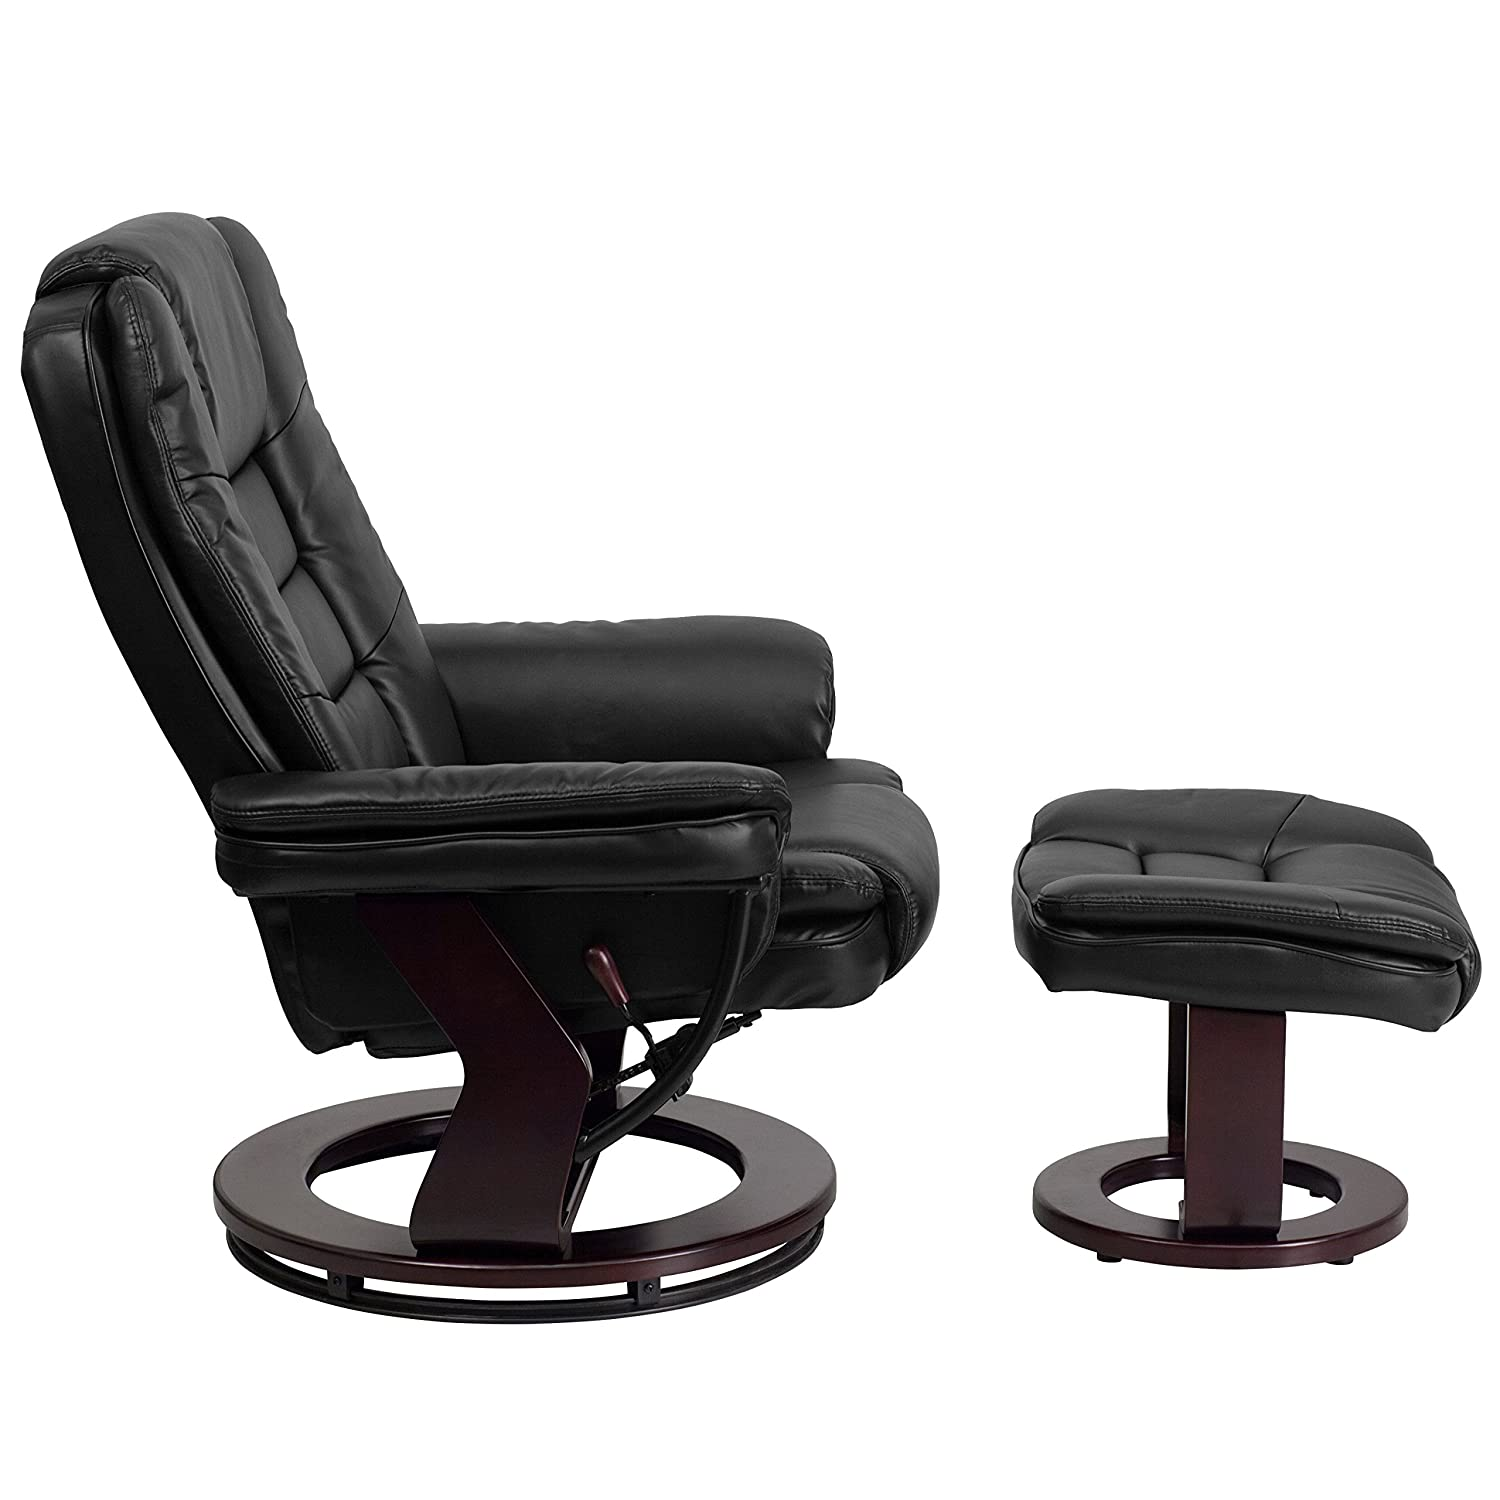 Superieur Amazon.com: Flash Furniture Contemporary Black Leather Recliner And Ottoman  With Swiveling Mahogany Wood Base: Kitchen U0026 Dining